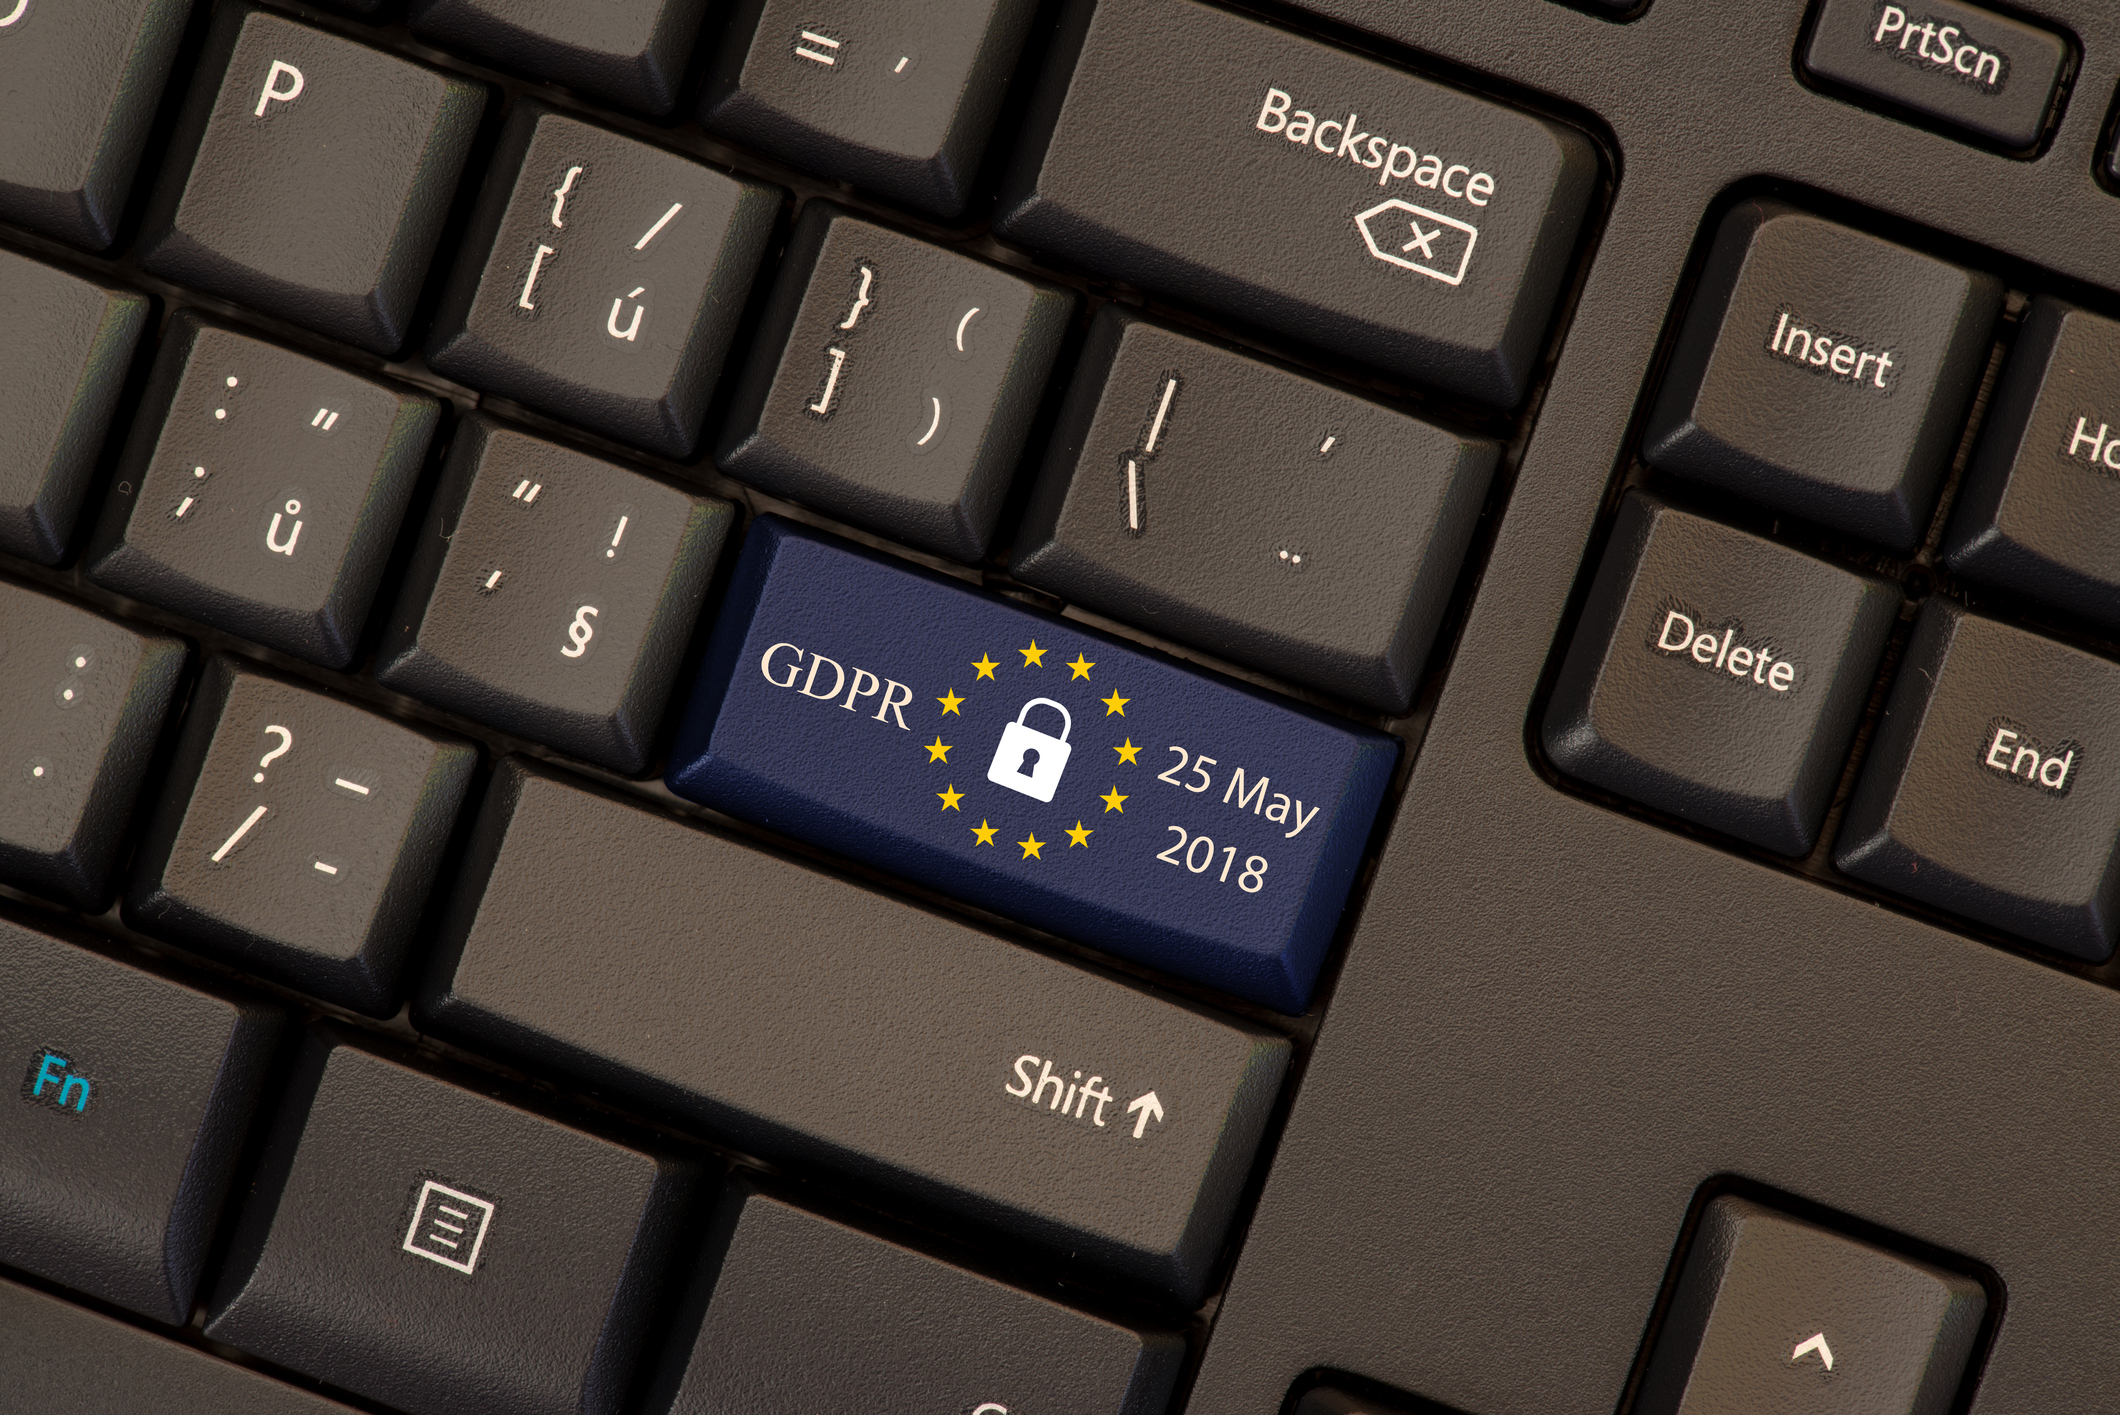 uk boards management of gdpr and board portals diligent